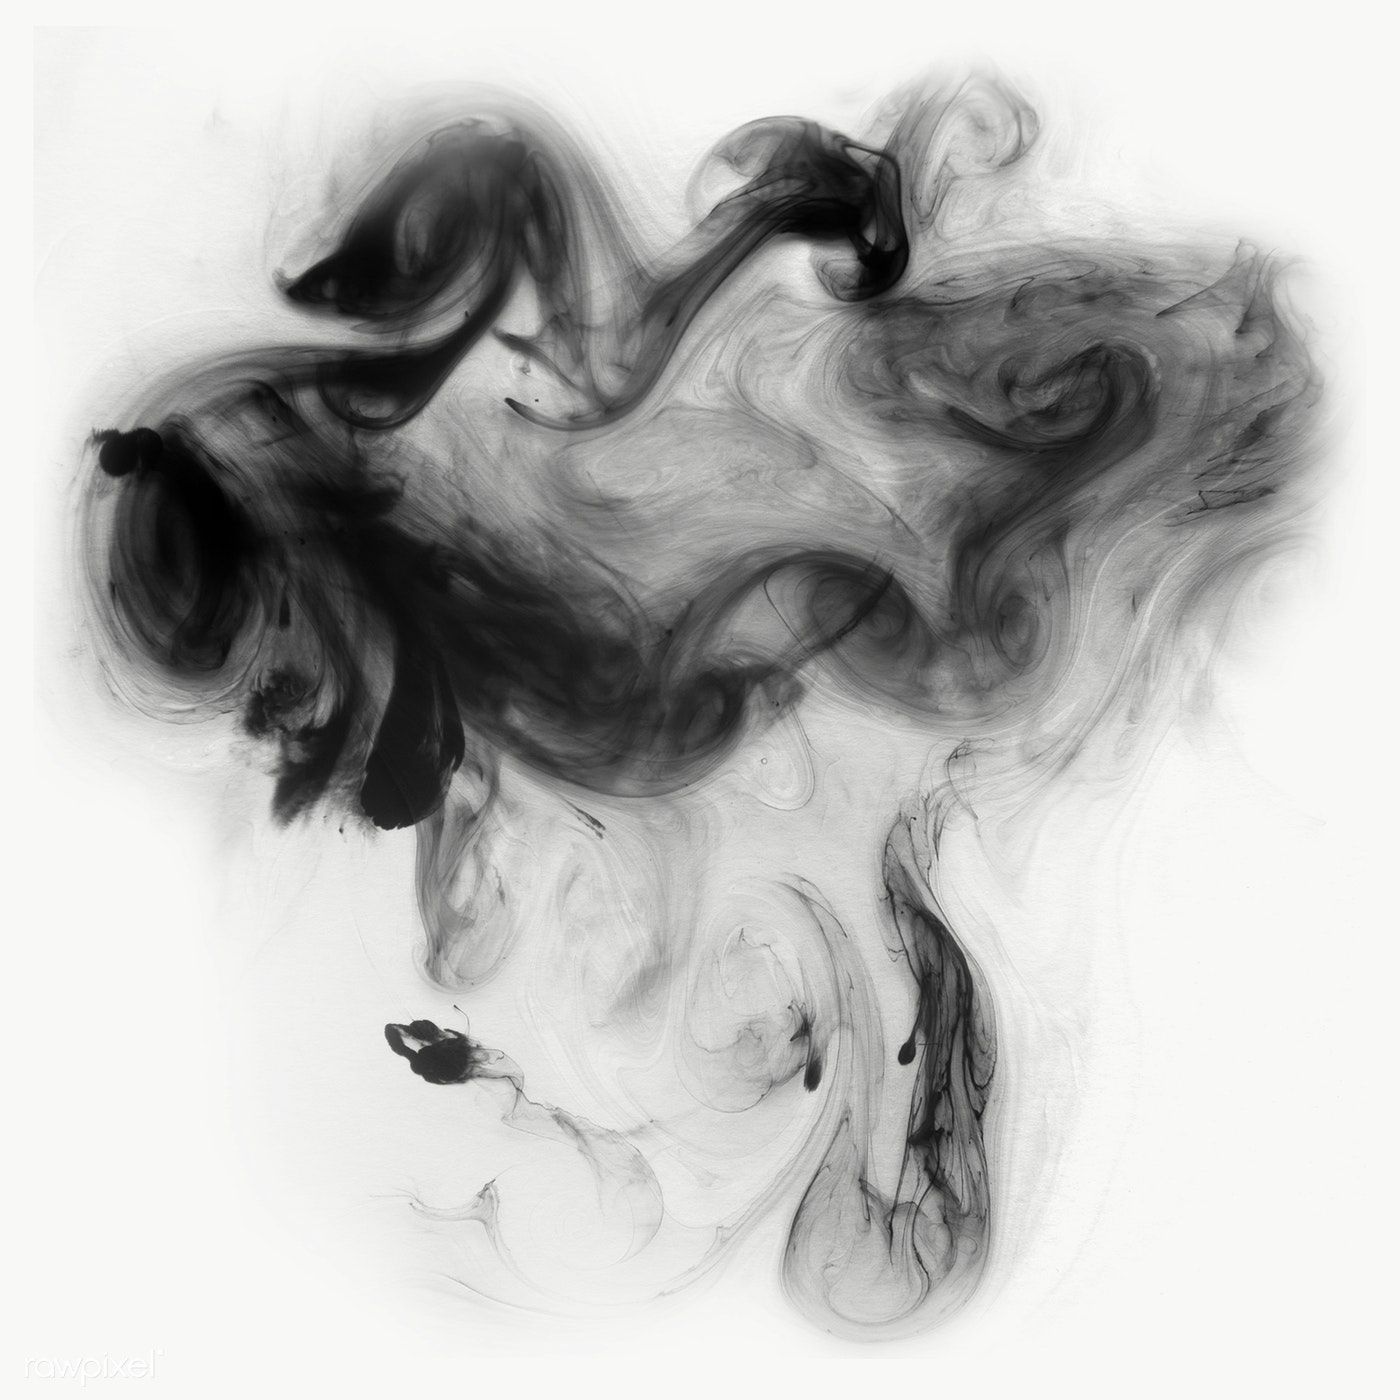 Abstract Black Watercolor Background Transparent Png Free Image By Rawpixel Com Adj